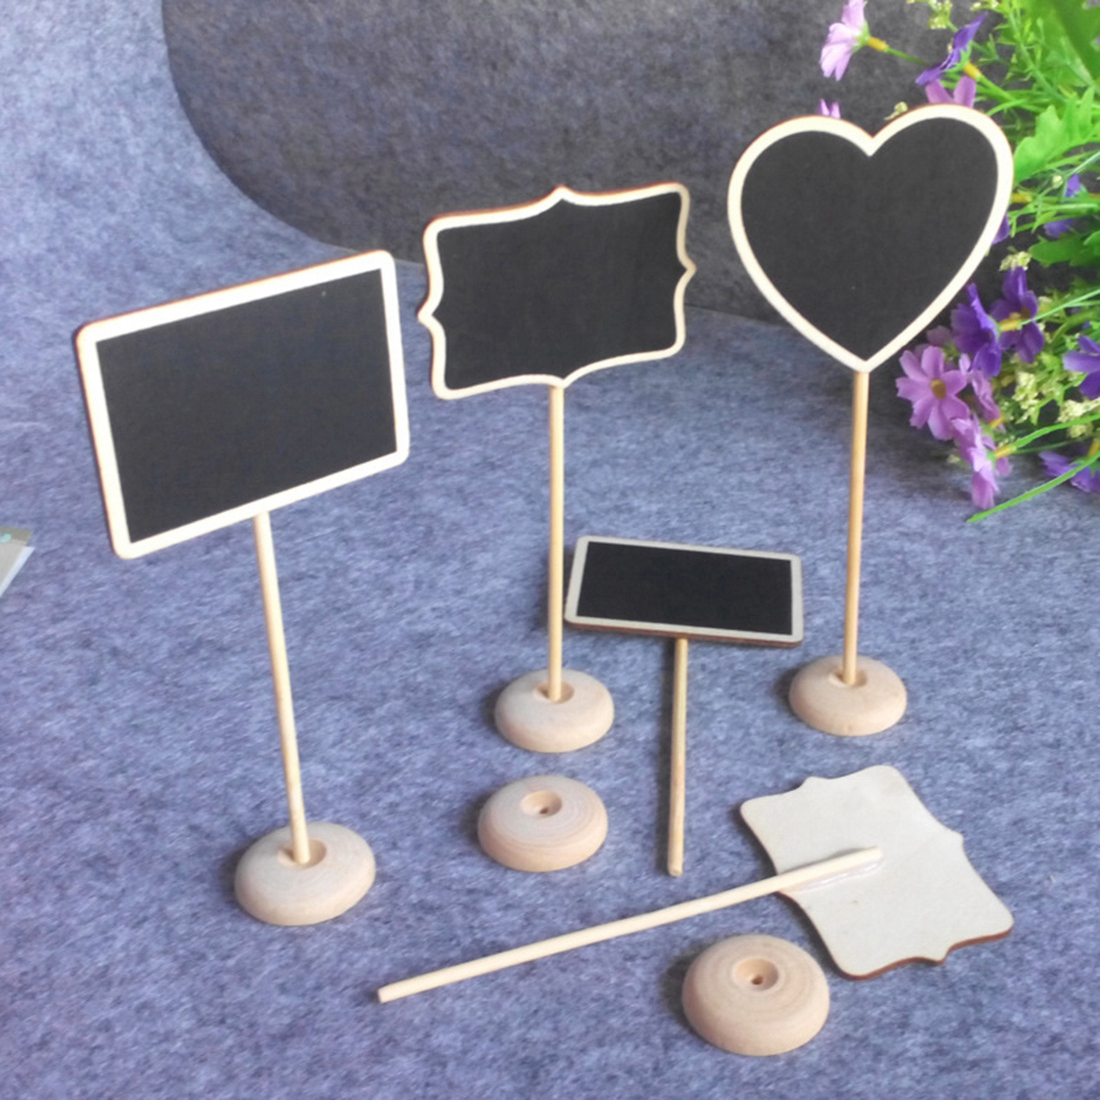 6pc Lot Rectangle Heart-shaped Wooden Holder Blackboard Message Board Seat Number Tag Sign Stent Wedding Party Decorations